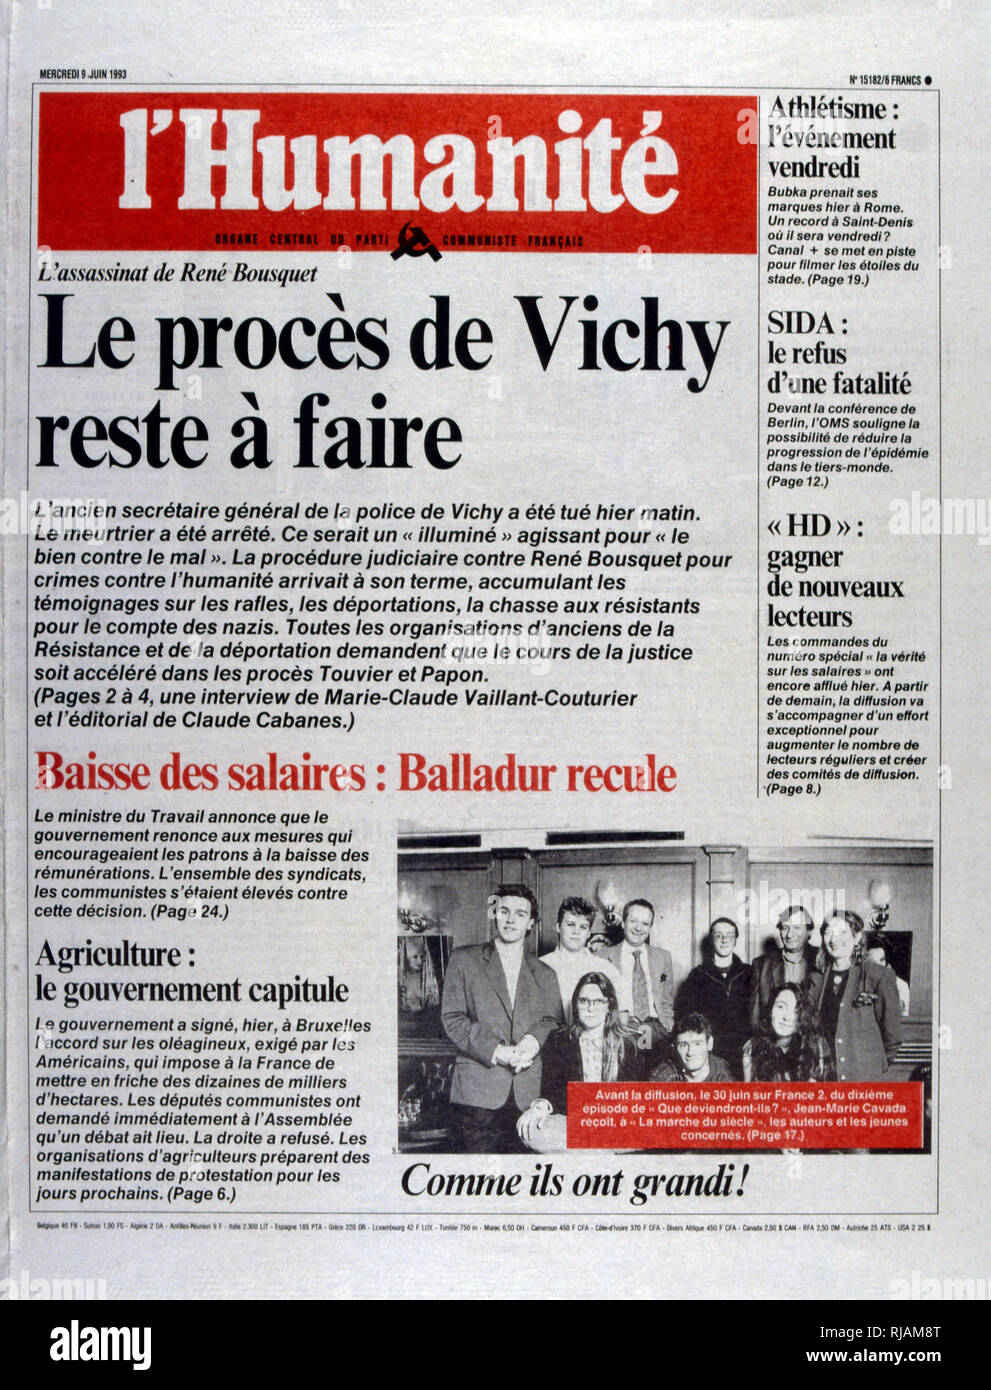 Front page of the French publication 'L'Humanite' reporting the assassination of Rene Bousquet, June 1993. Rene Bousquet (1909 - 8 June 1993); high-ranking French political appointee who served as secretary general to the Vichy regime police from May 1942 to 31 December 1943. After receiving amnesty in 1959, Bousquet became active again in politics, supporting left-wing politicians through the 1970s. He was indicted in 1991 for his decisions during the Vel' d'Hiv Roundup in 1942, which led to Jewish children being deported and killed. Bousquet was assassinated in 1993 by Christian Didier short - Stock Image